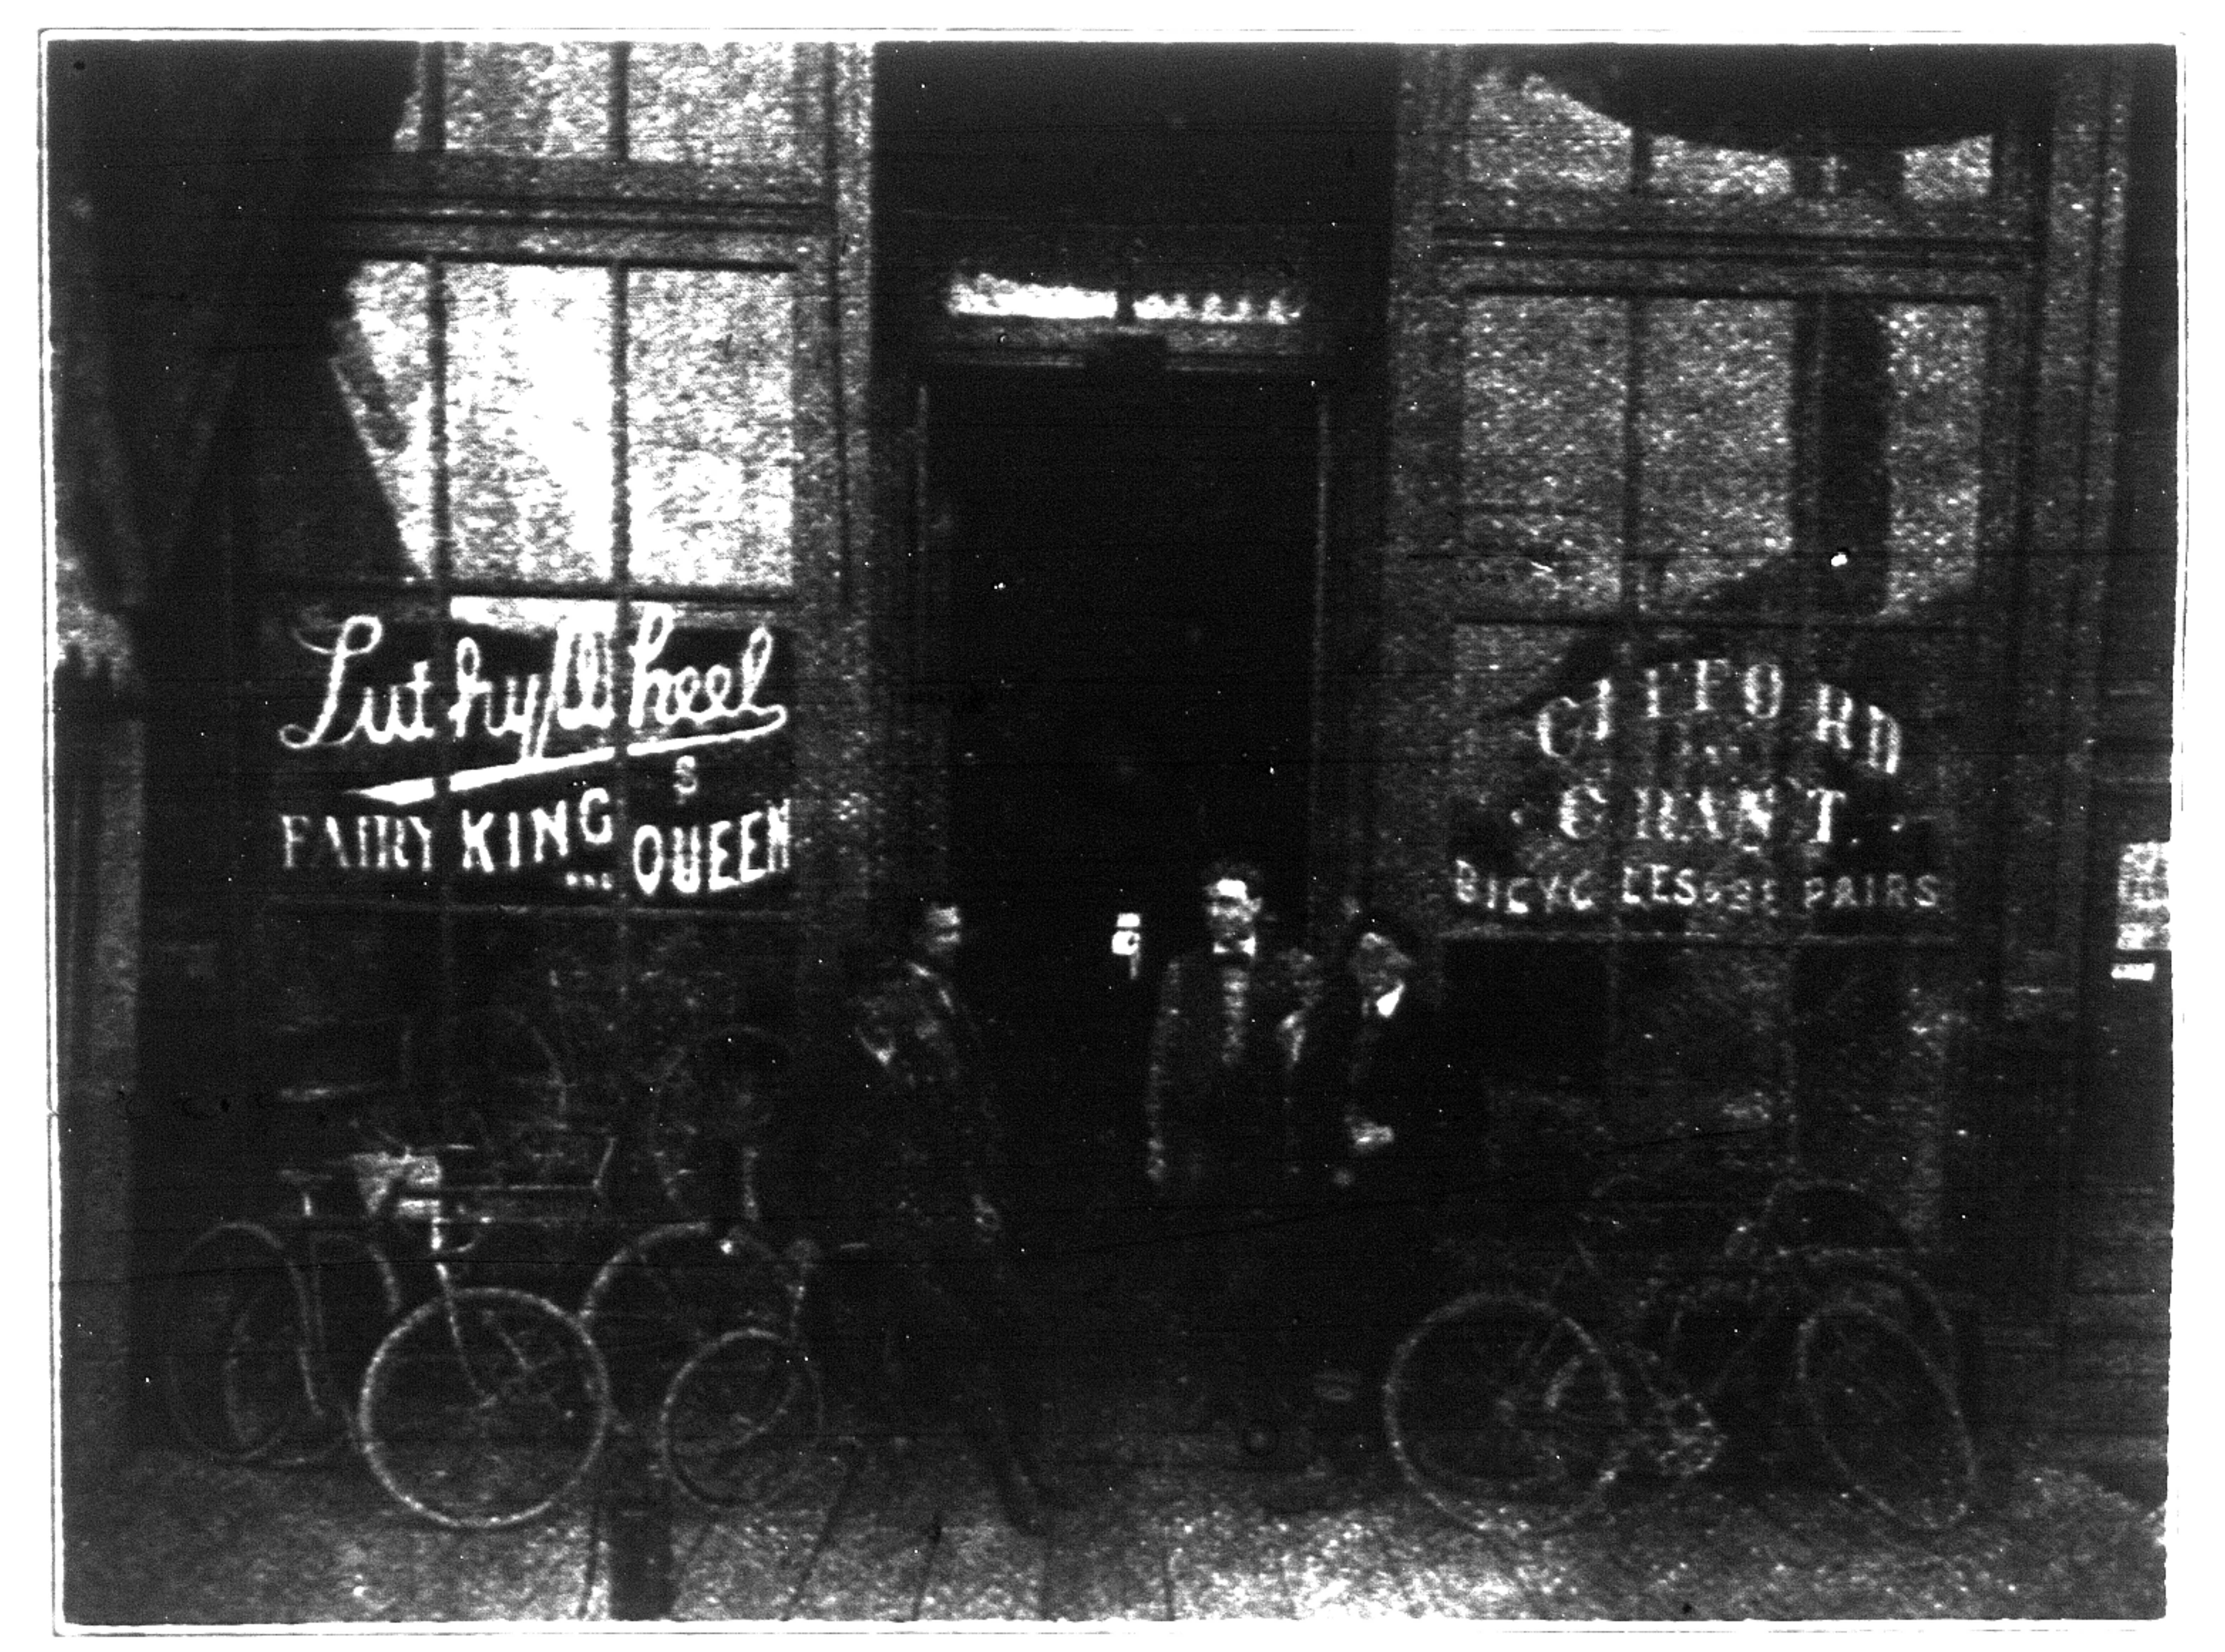 gifford_and_grants_bike_shop1.jpg